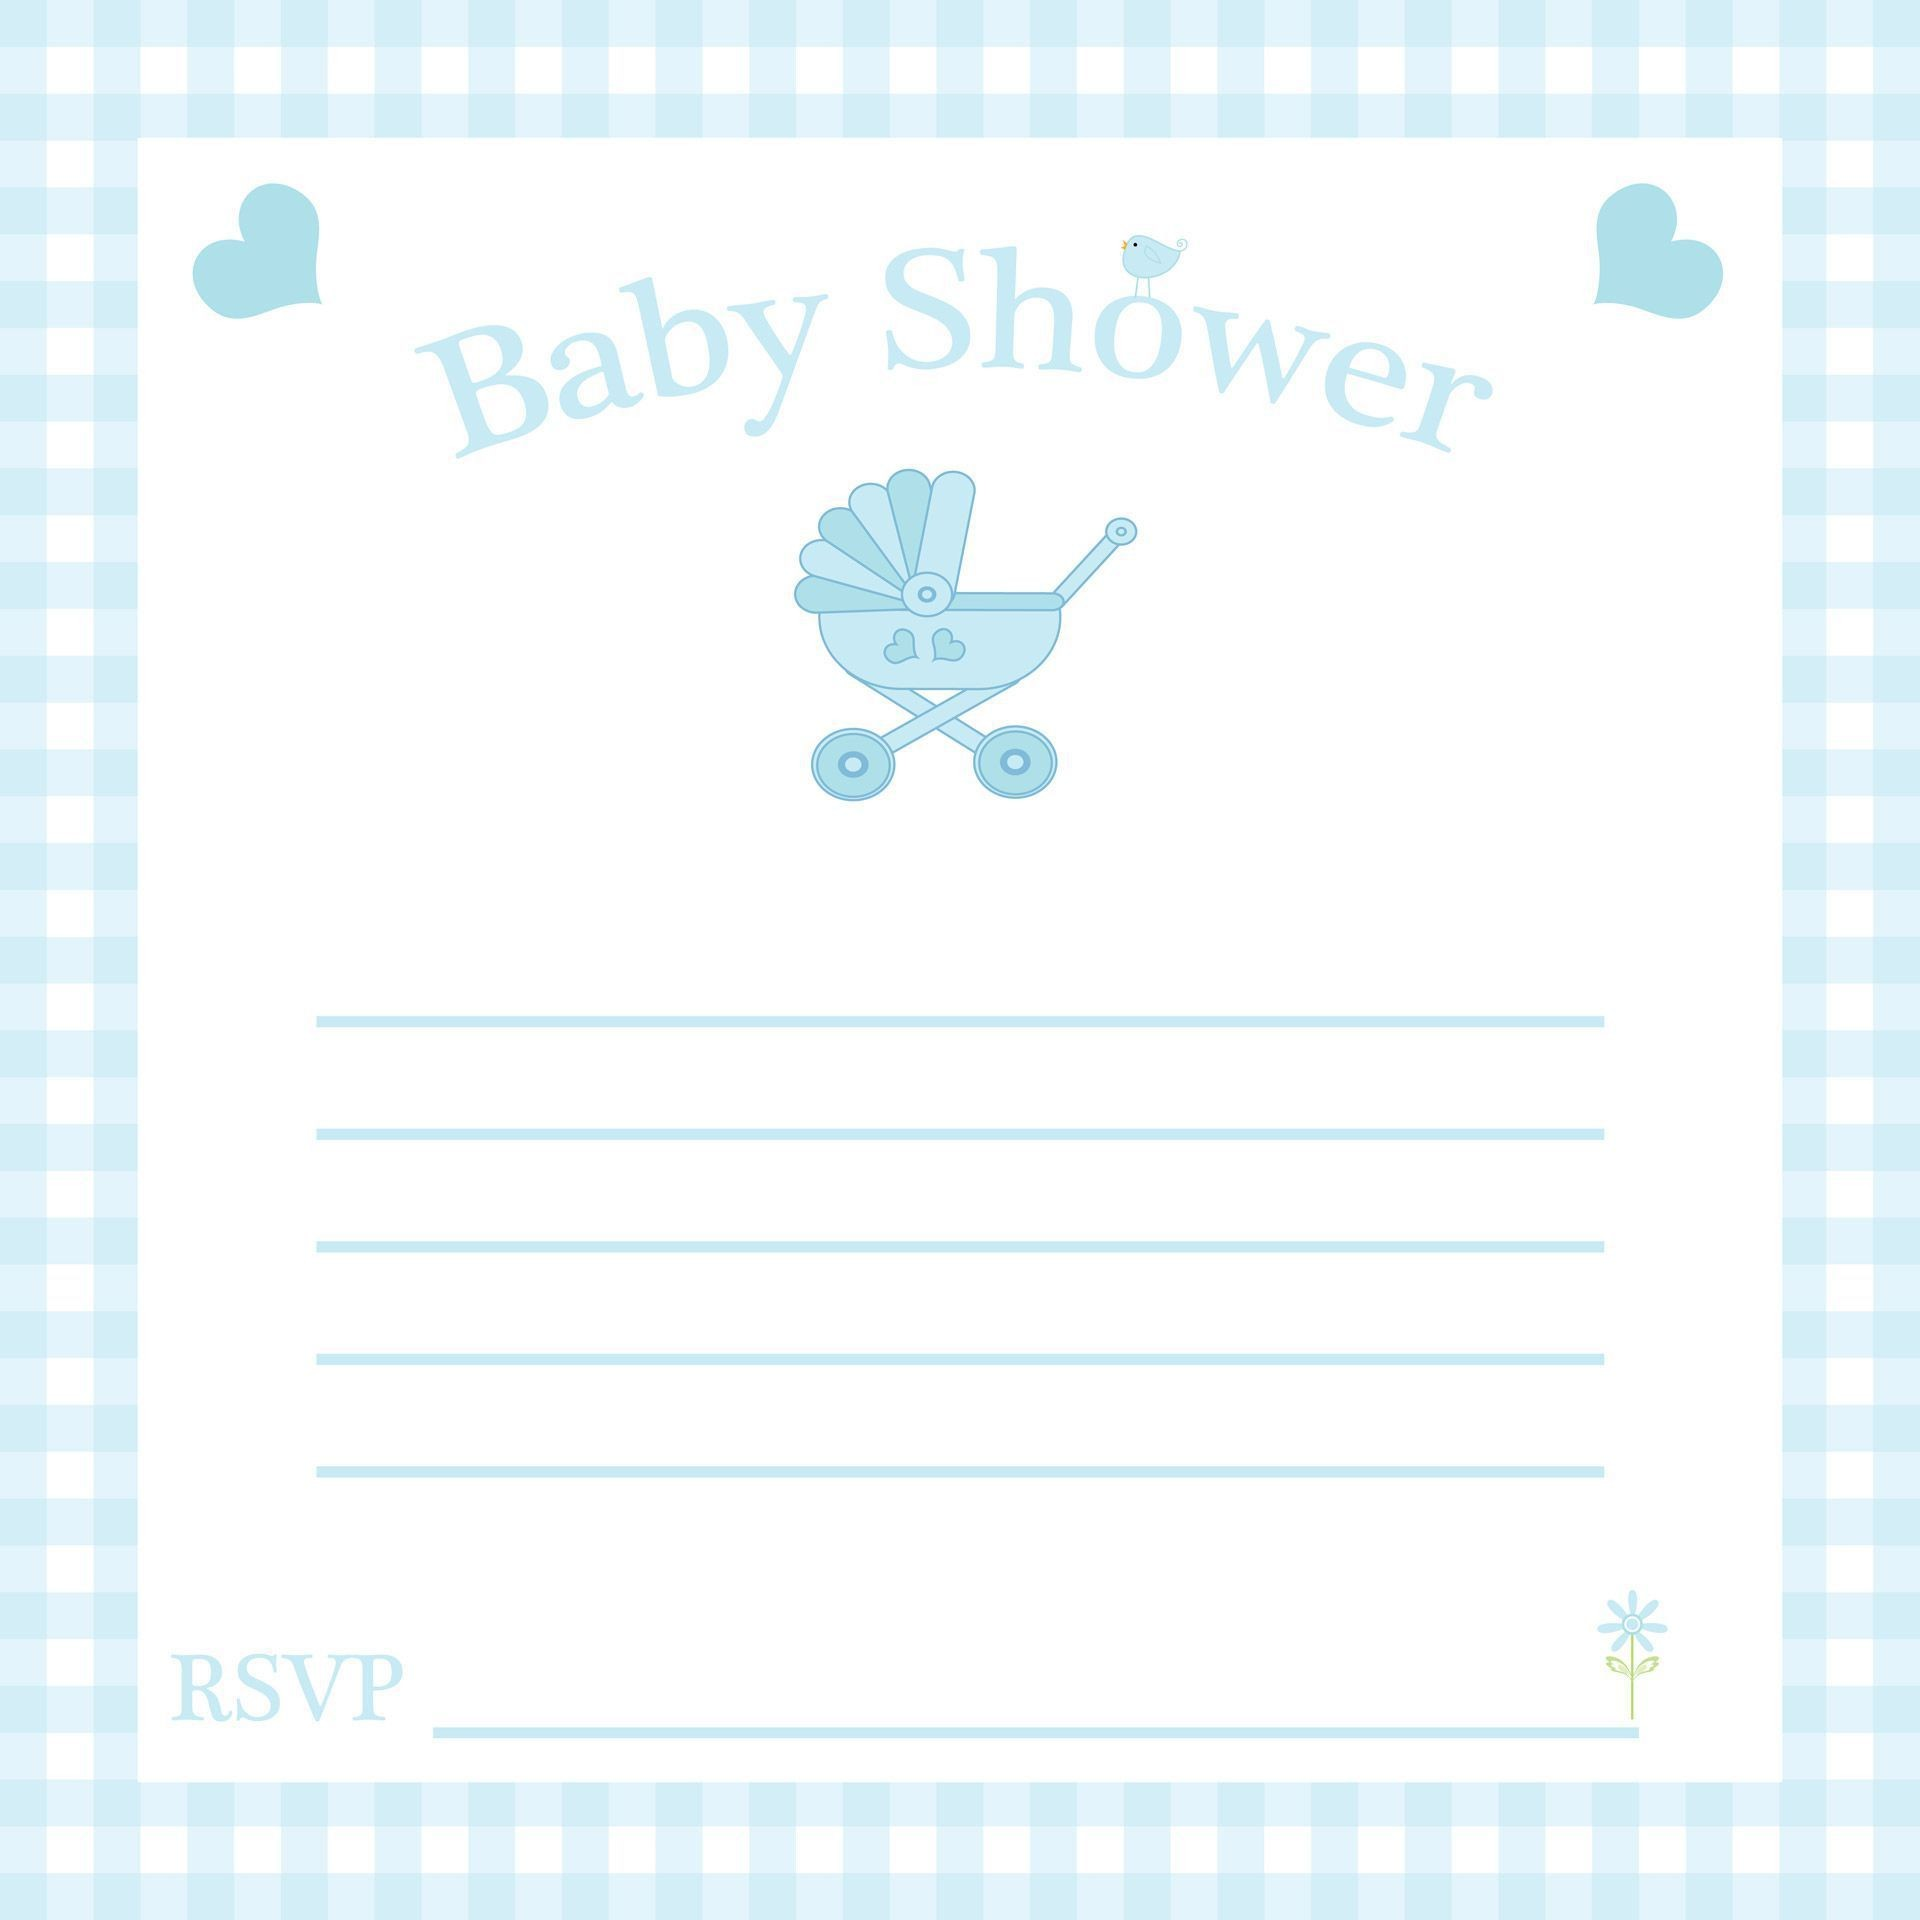 008 Archaicawful Baby Shower Template Word Highest Quality  Printable Search Free Invitation1920